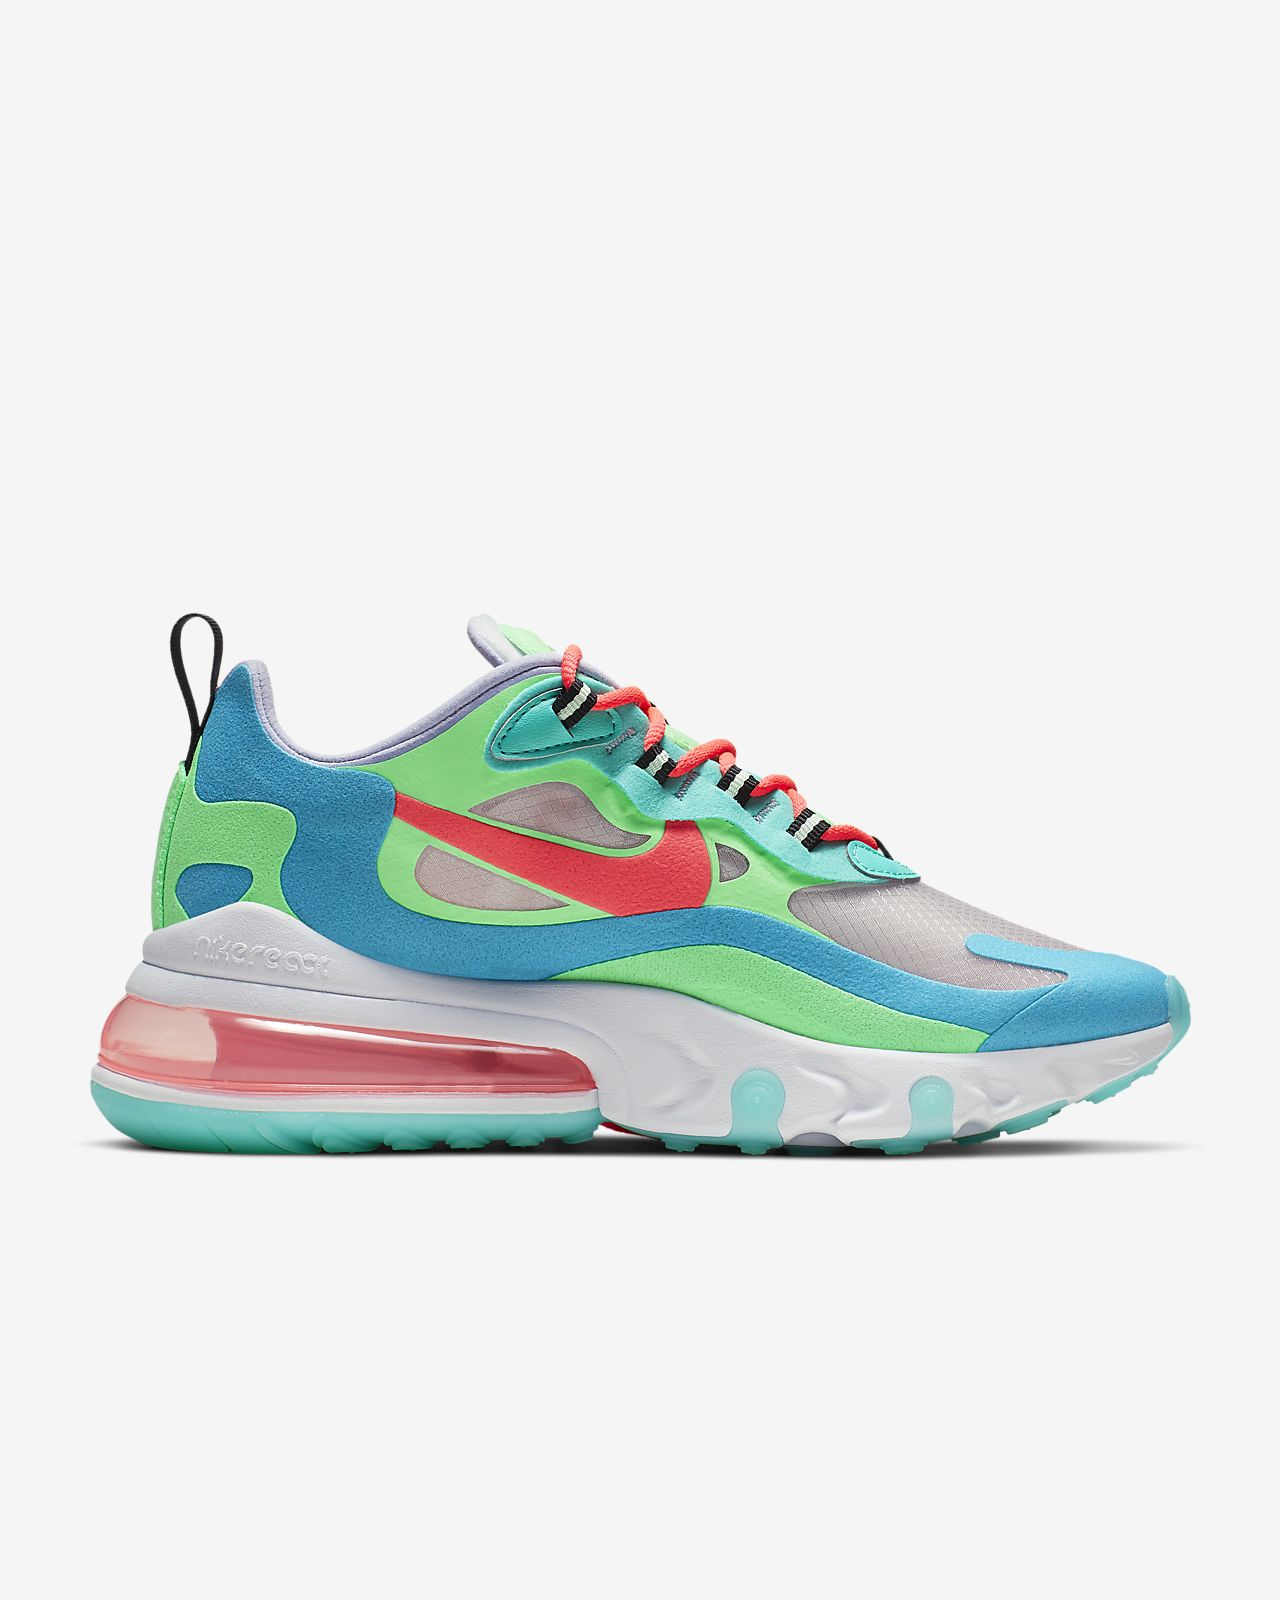 Chaussure Nike Air Max 270 React (« Psychedelic Movement ») pour Femme